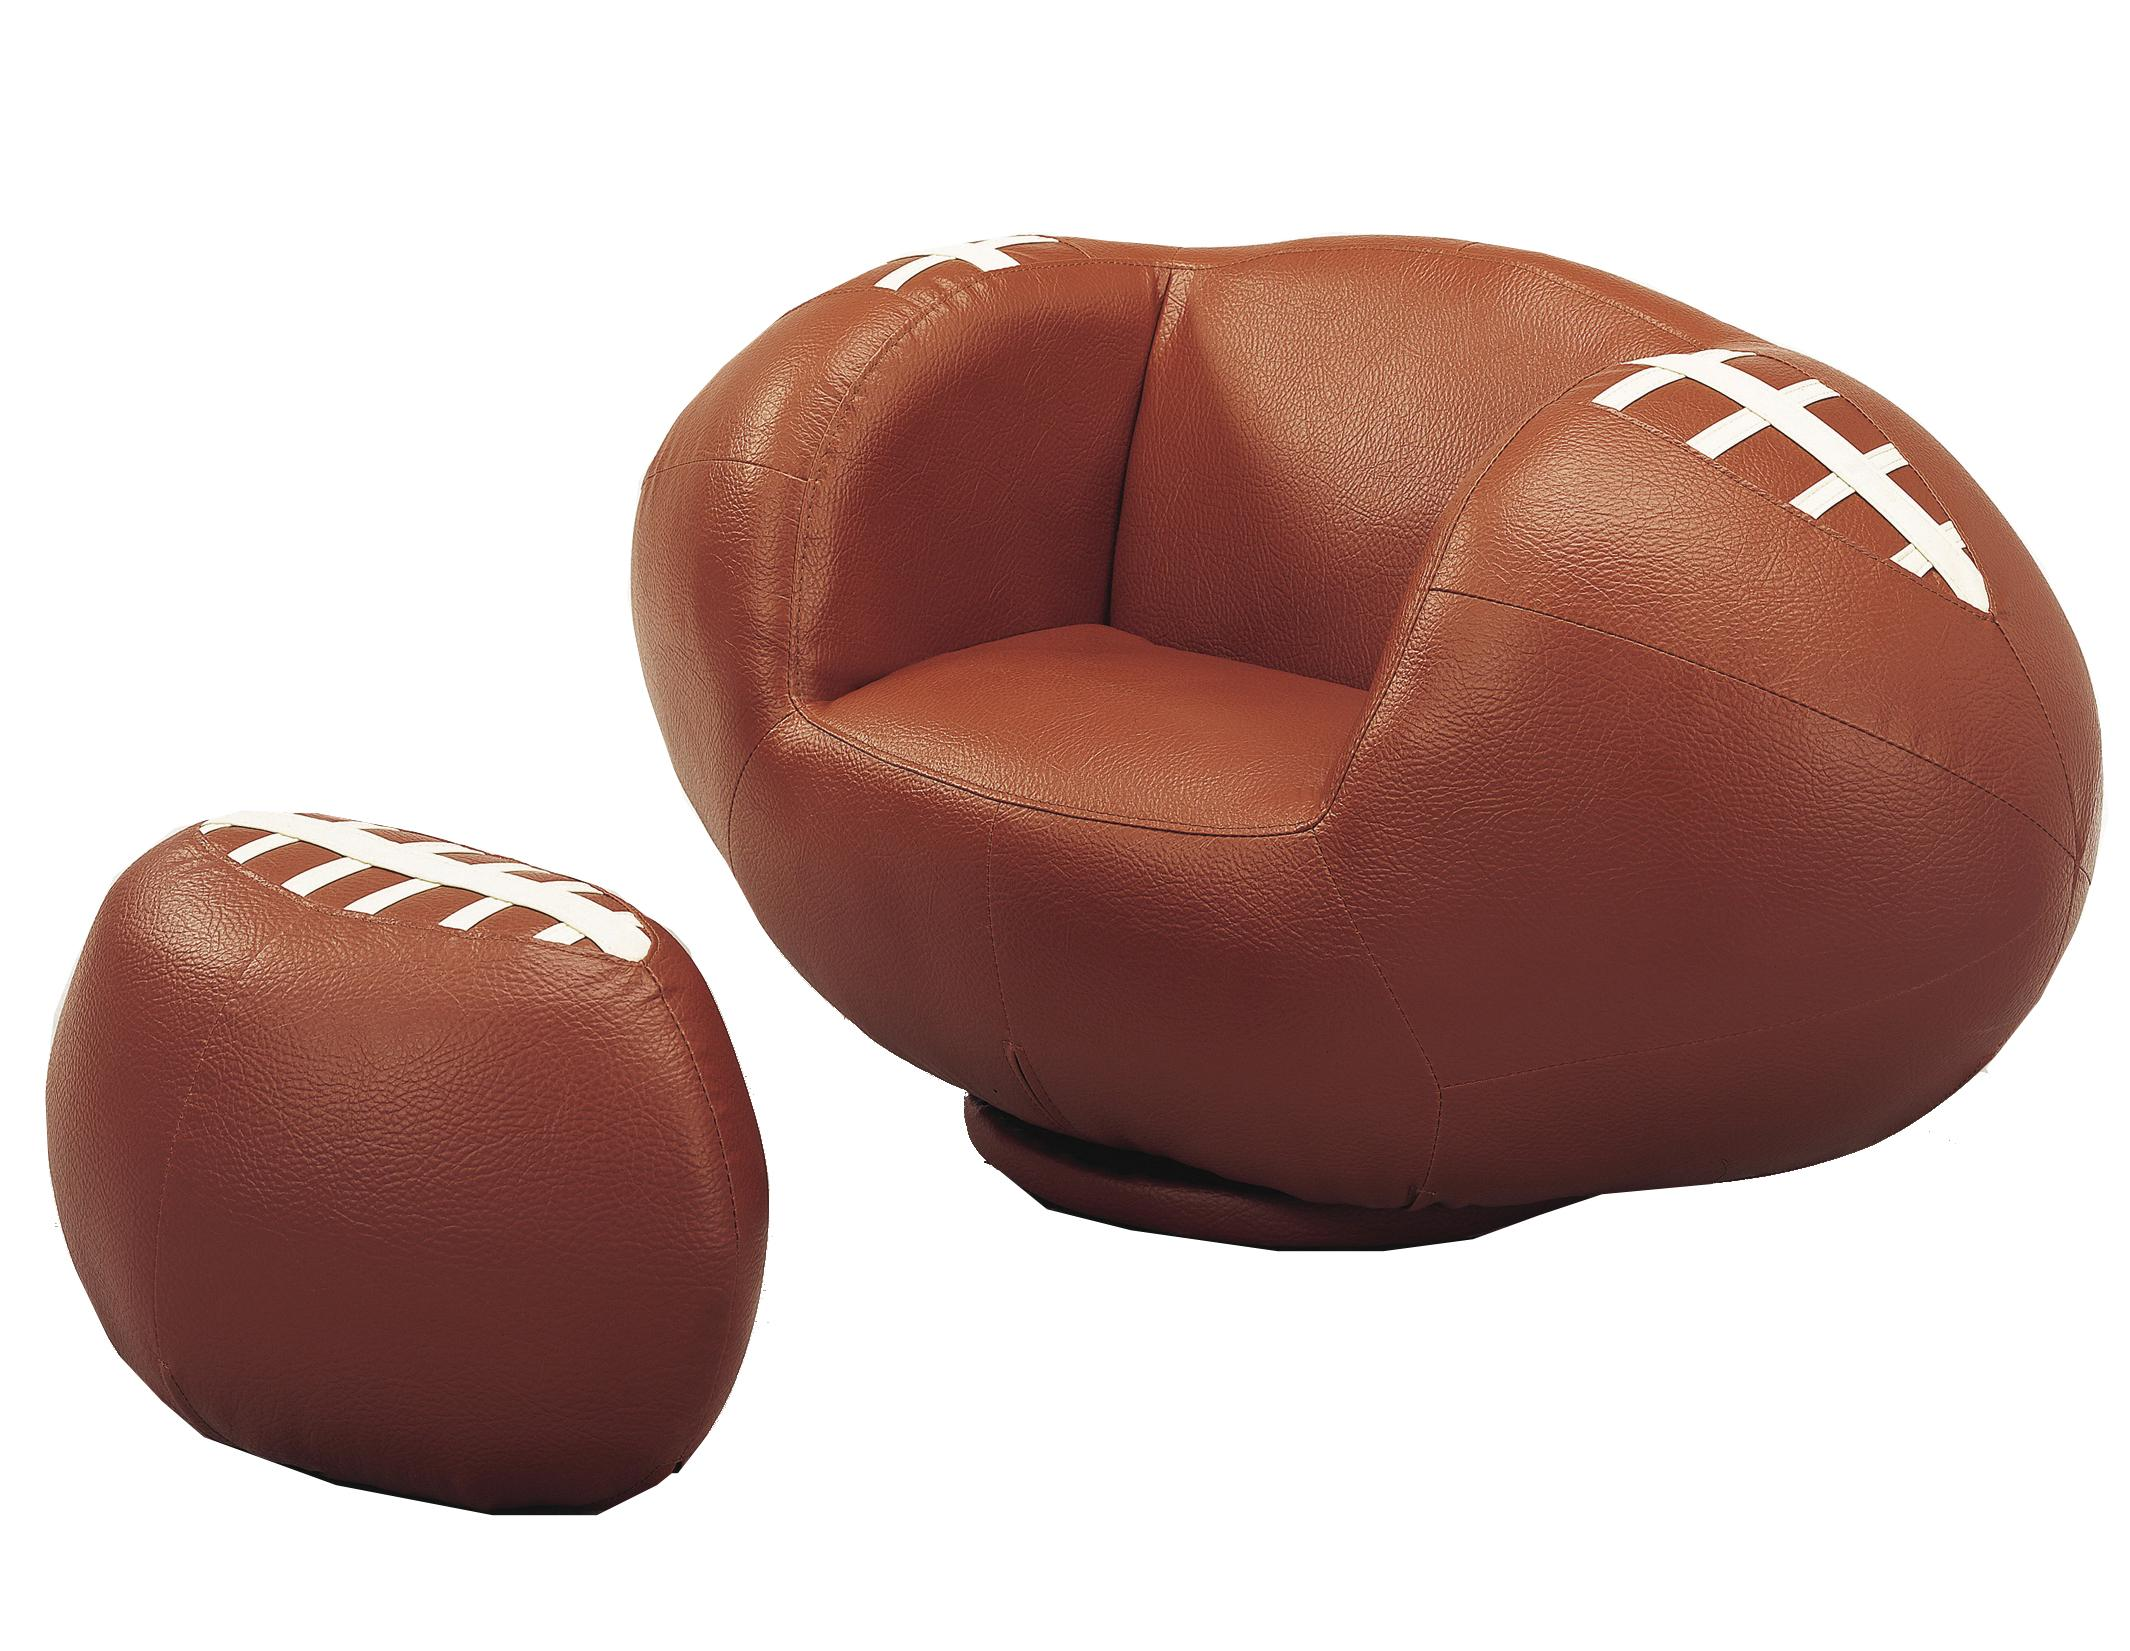 Crown Mark Kids Sport Chairs Football Chair & Ottoman - Item Number: 7003